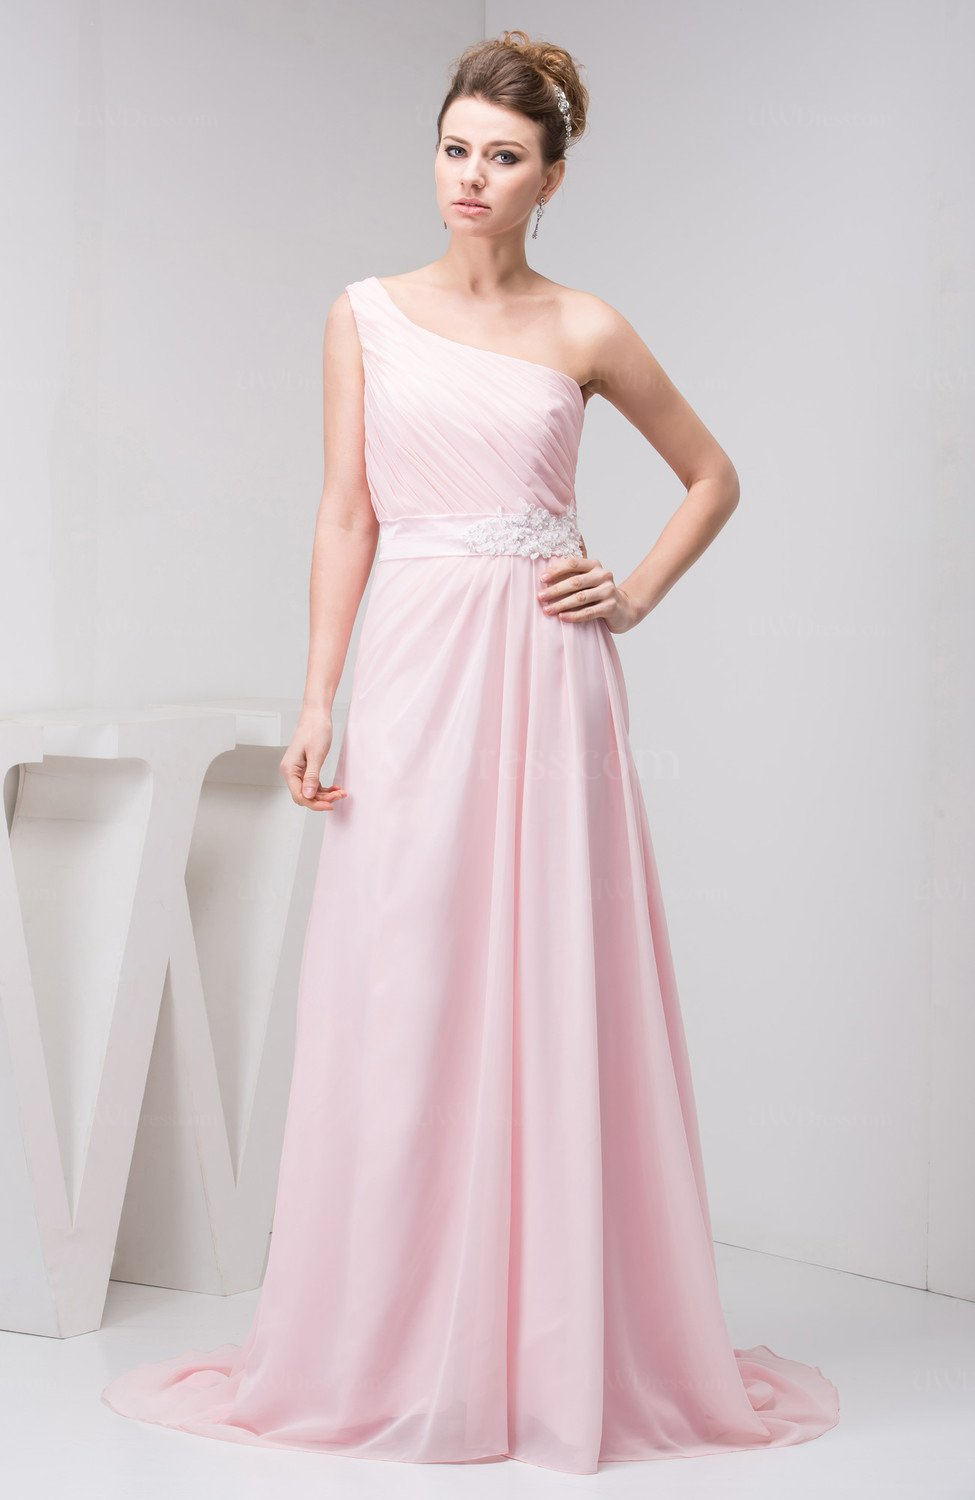 Baby Pink Affordable Evening Dress Elegant Inexpensive One